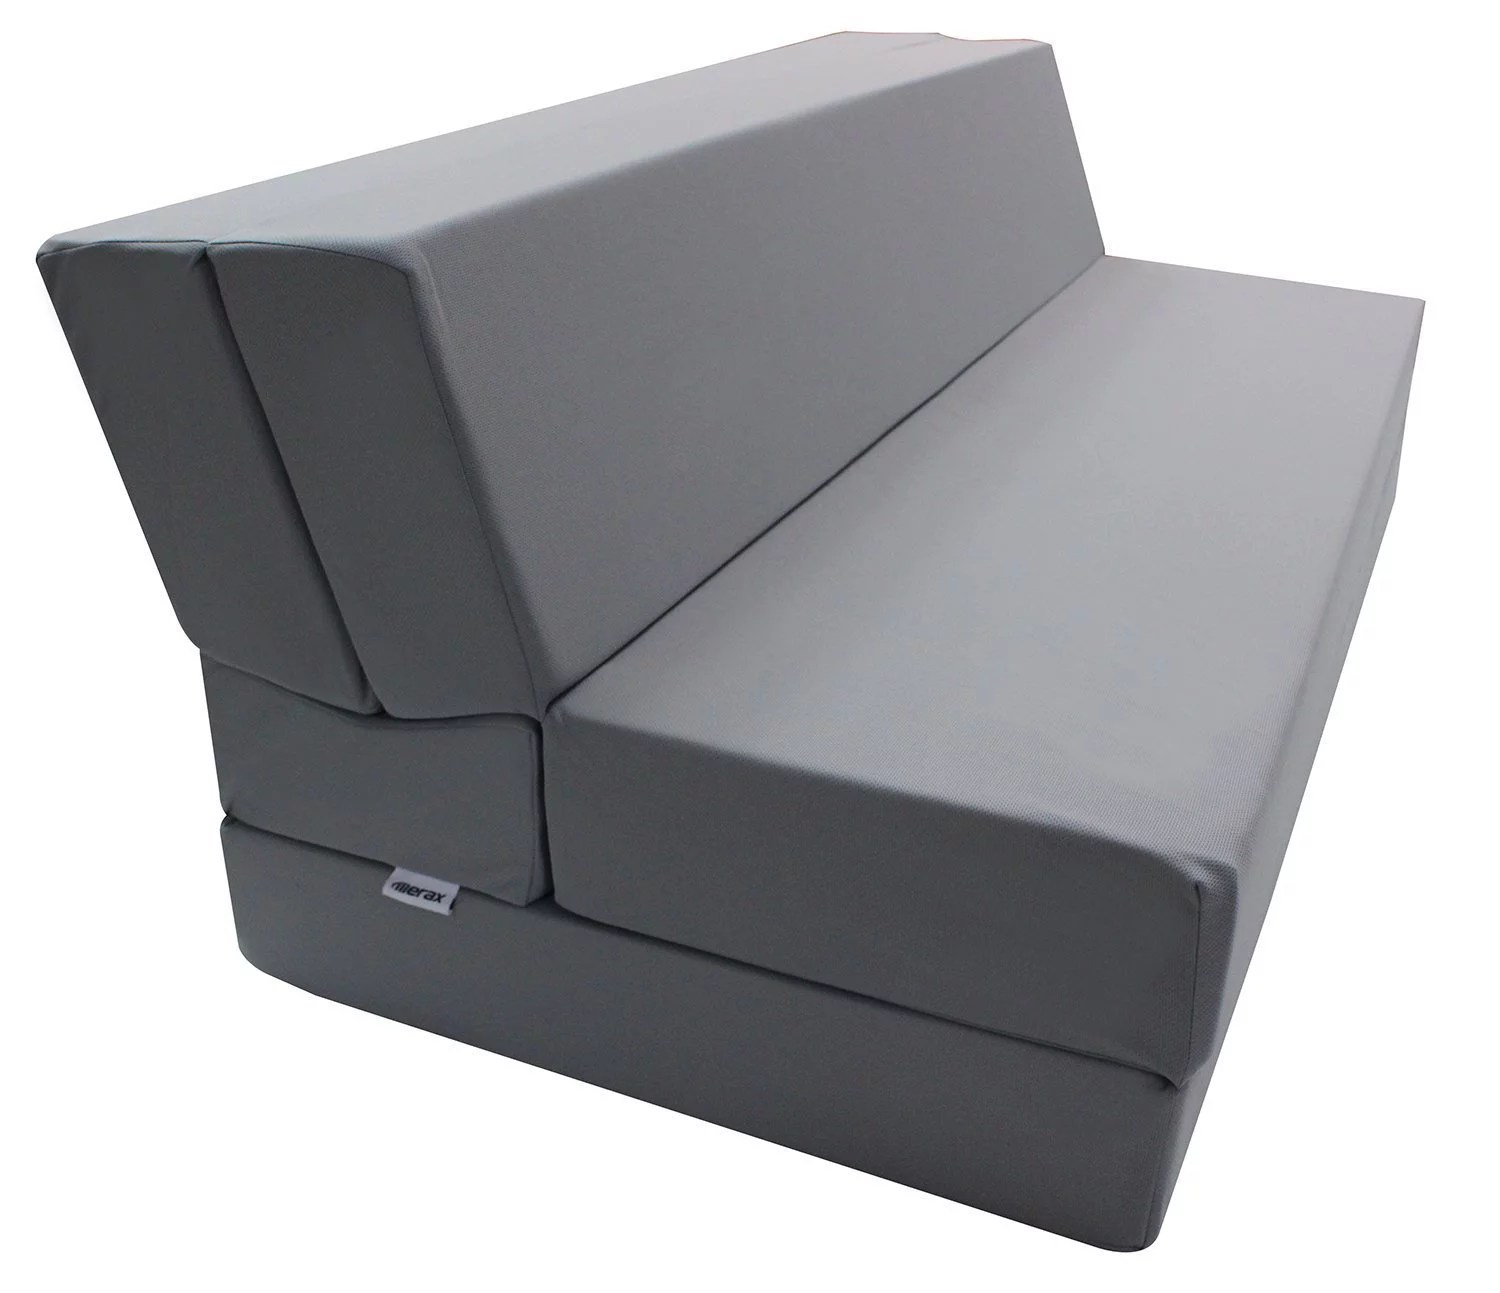 Foam Sofa Bed Foam Fold Out Sofa Bed Australia Couch And